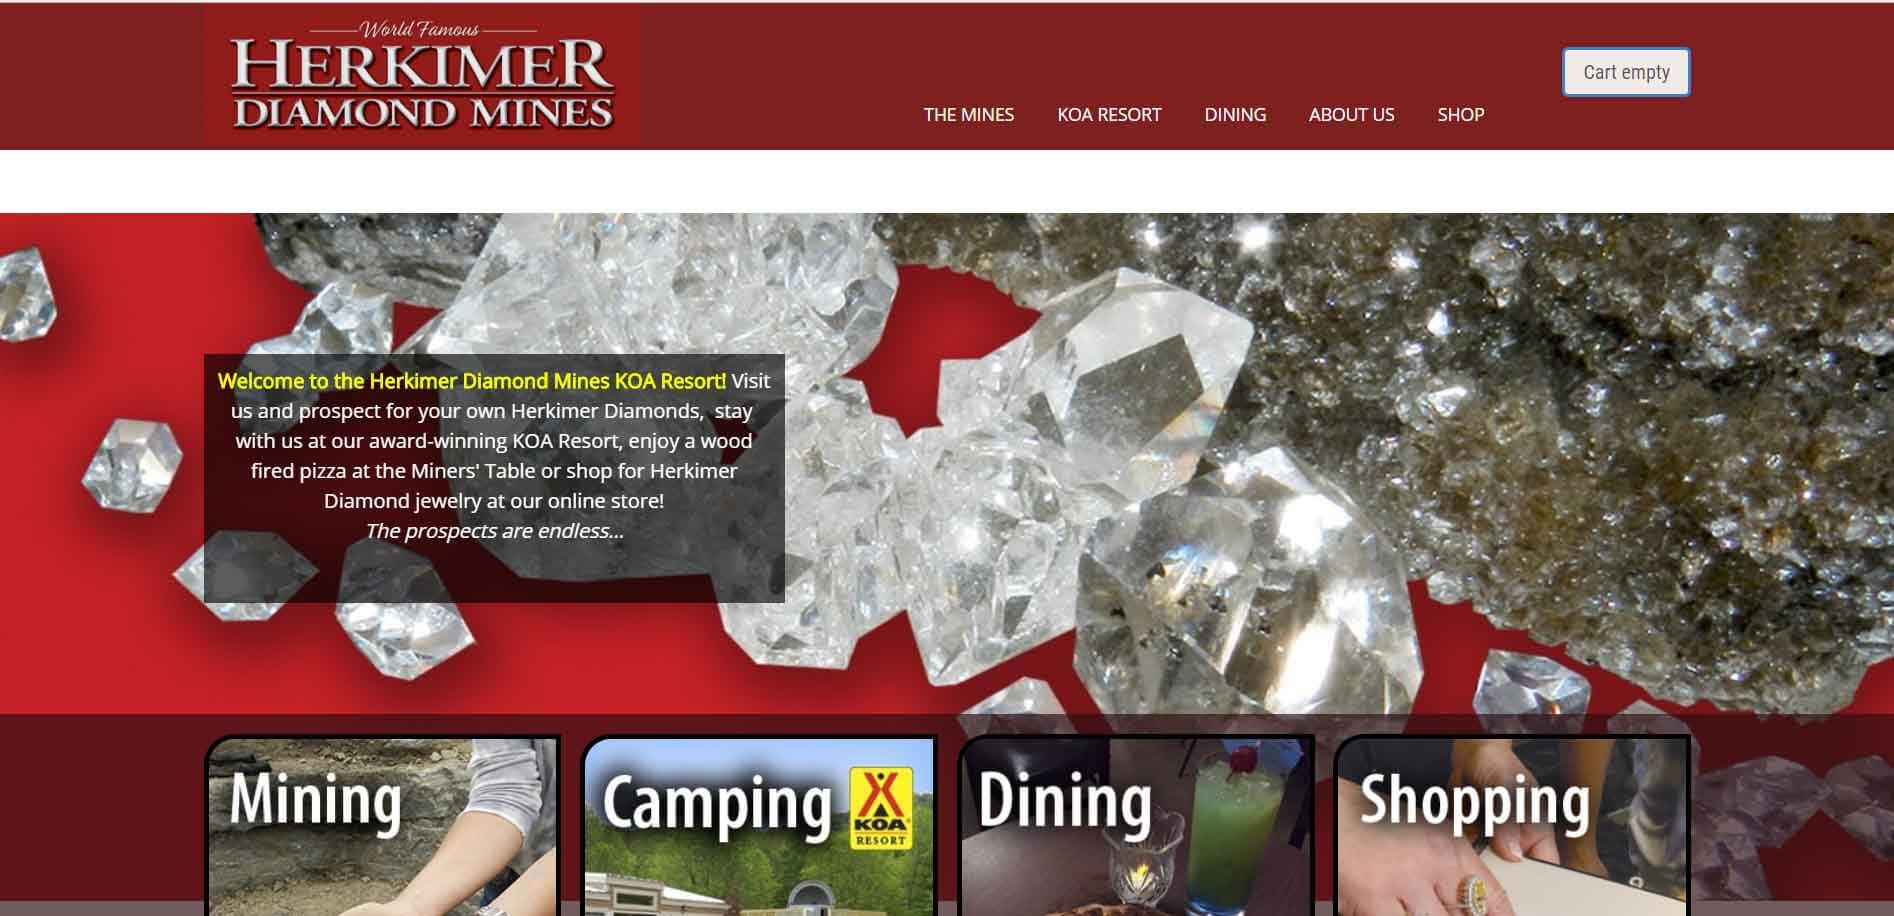 Herkimer Diamonds Mines